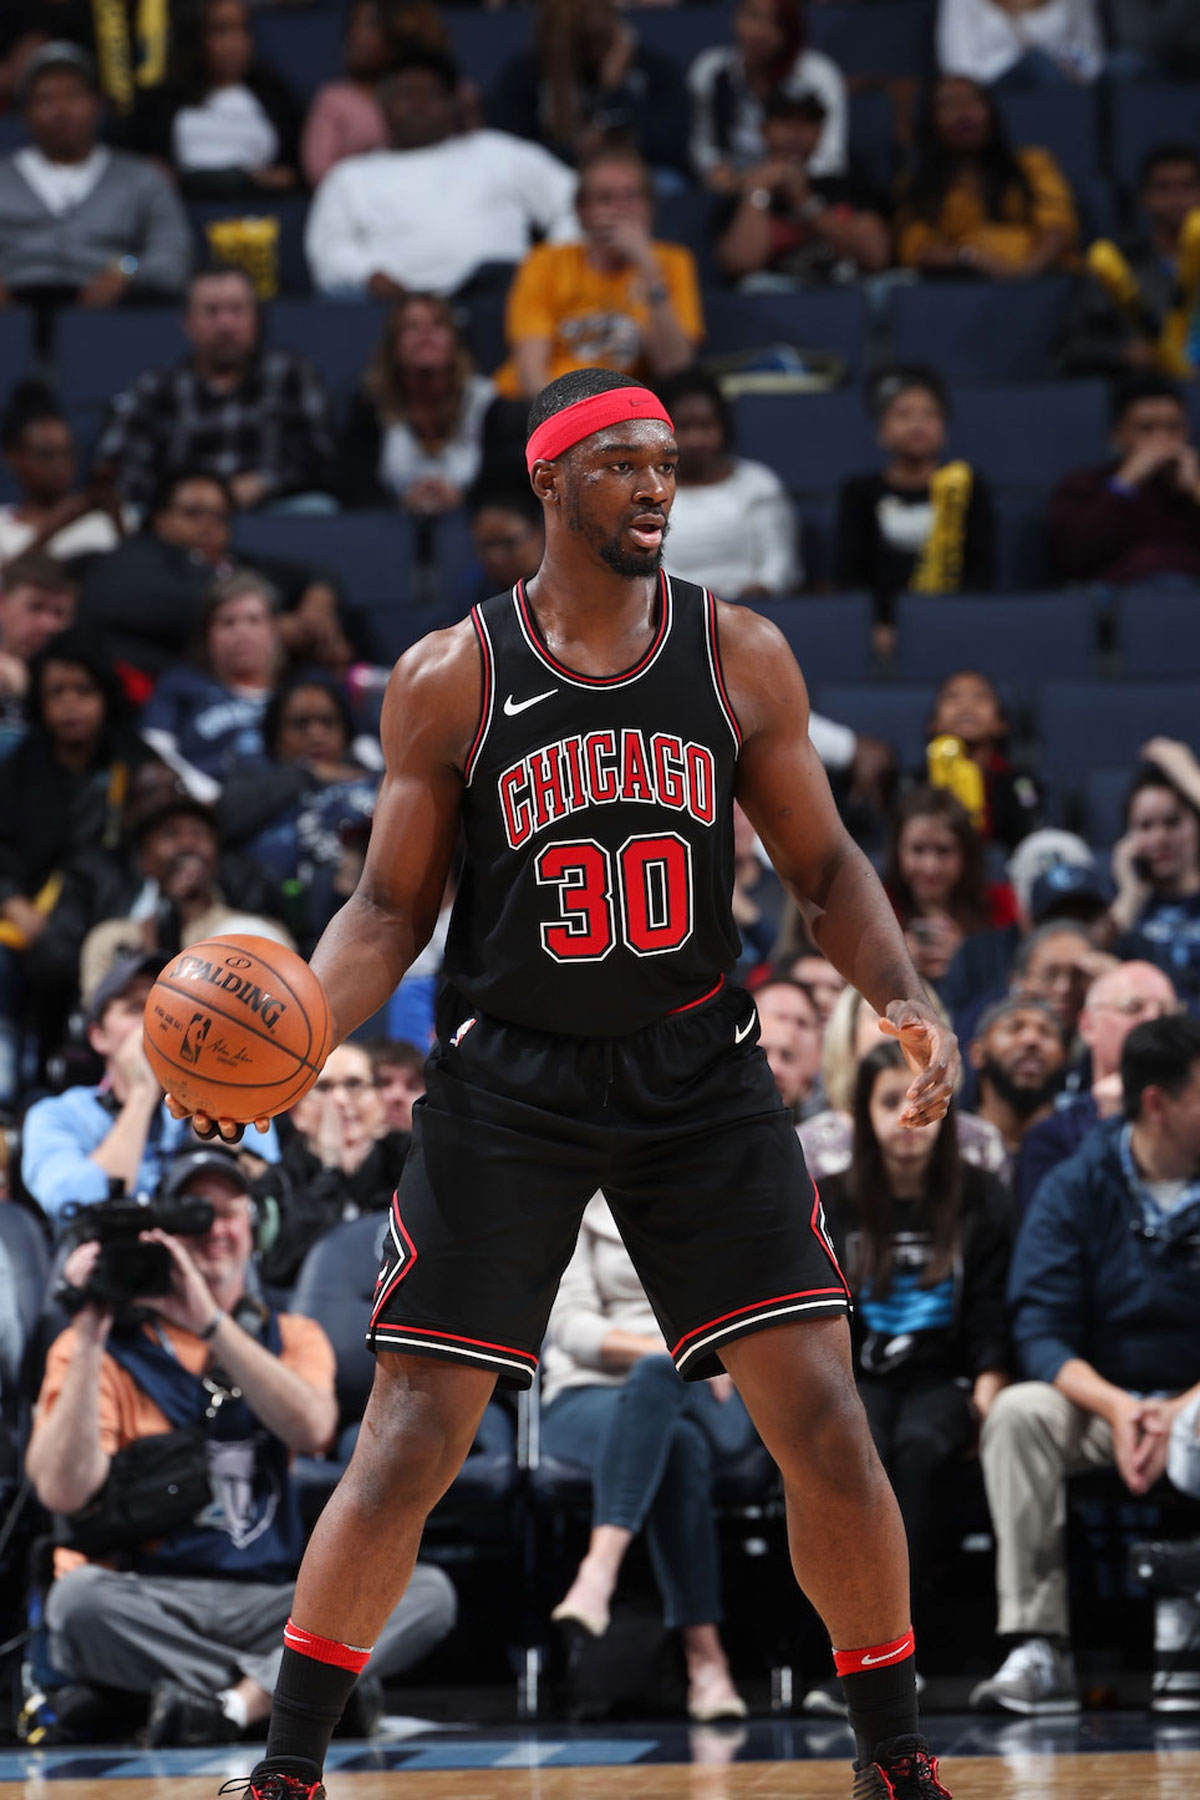 Noah Vonleh #30 of the Chicago Bulls handles the ball during the game against the Memphis Grizzlies